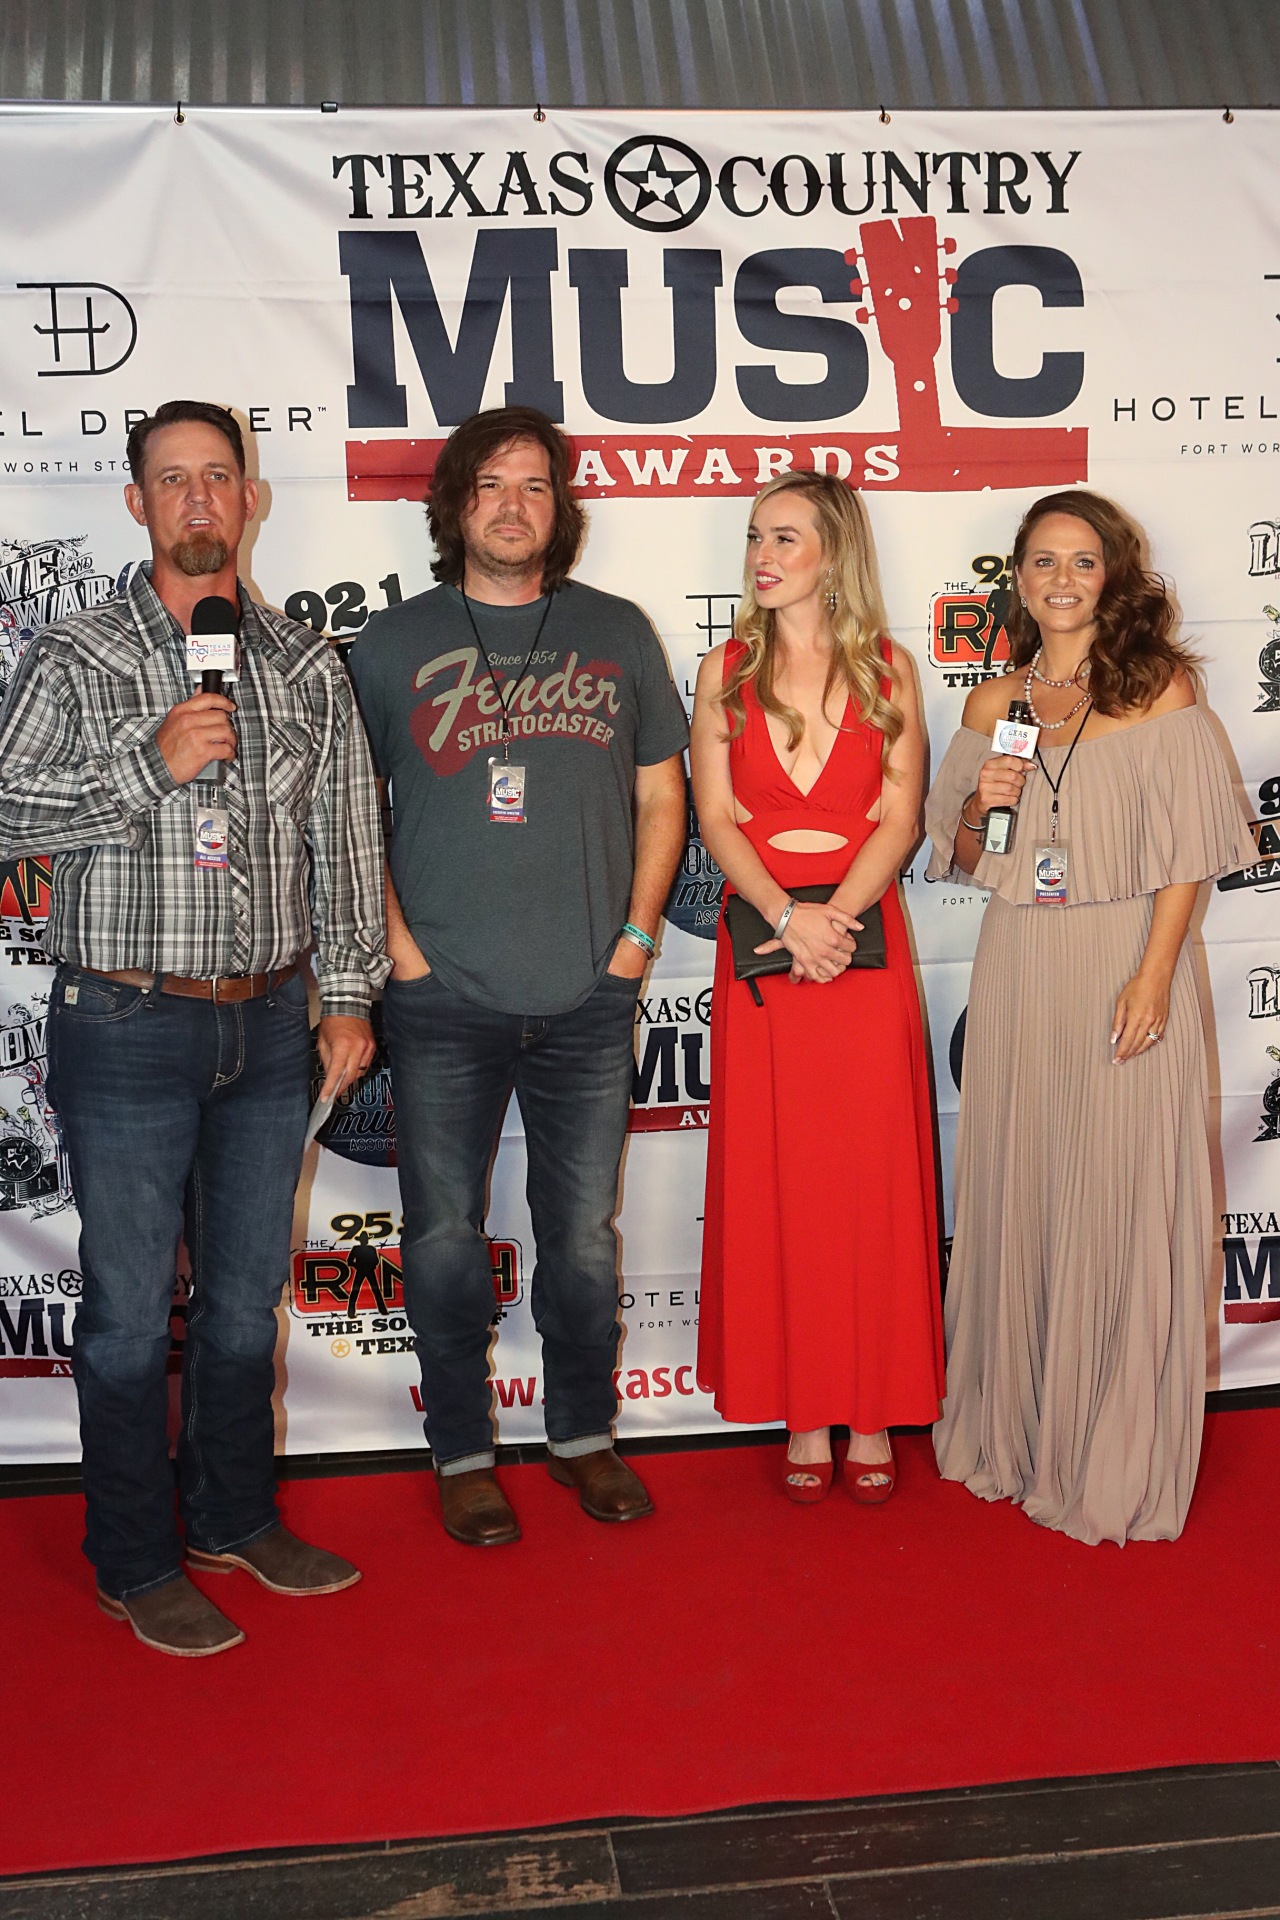 The Texas Country Music Awards 2019 Spotlighted Great Artists